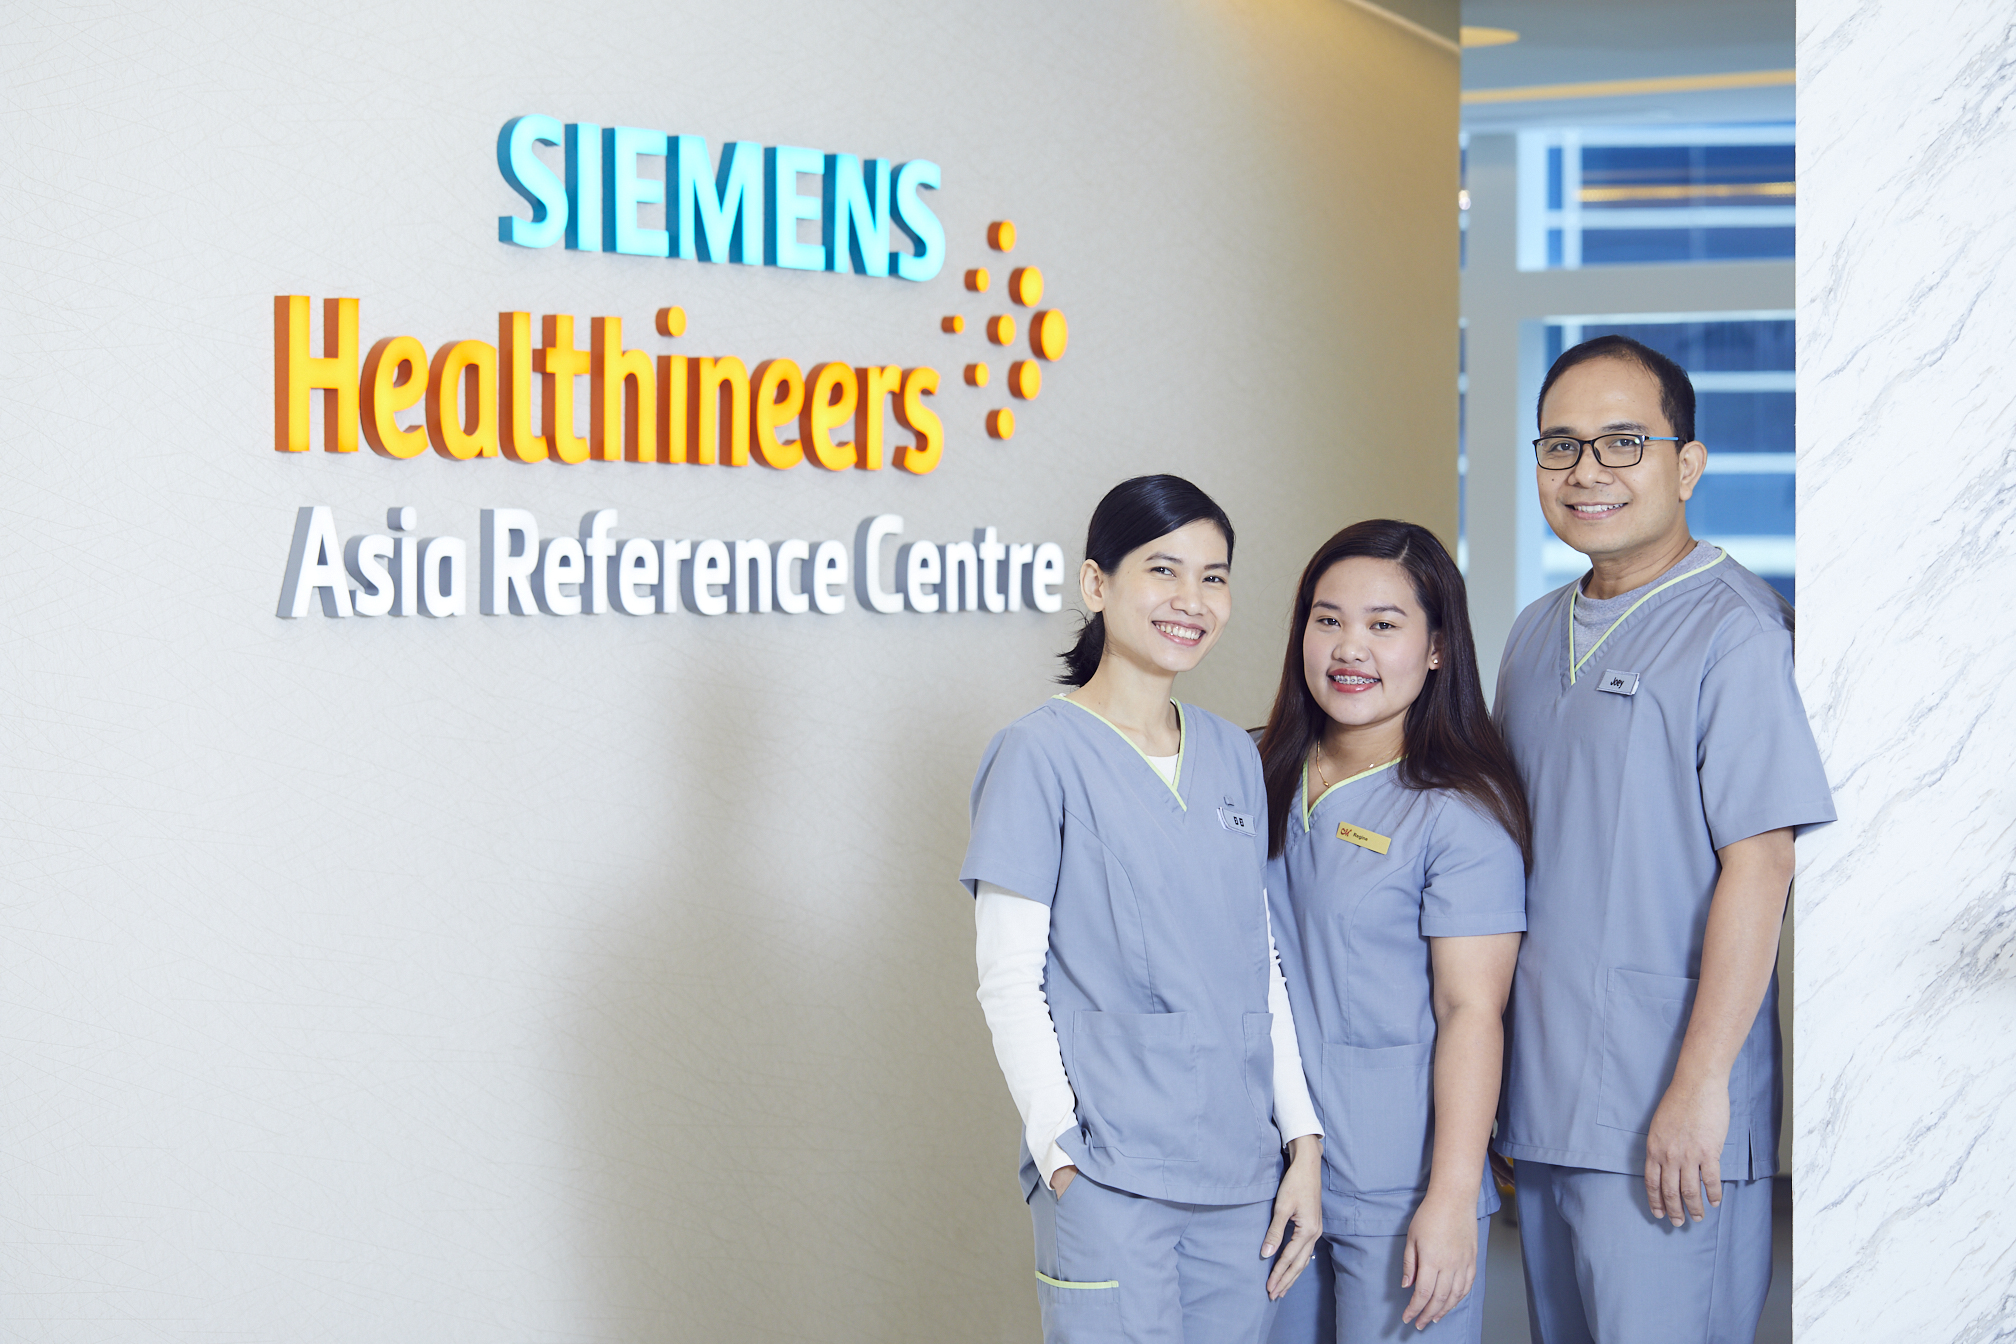 Siemens Healthineers Asia Reference Centre